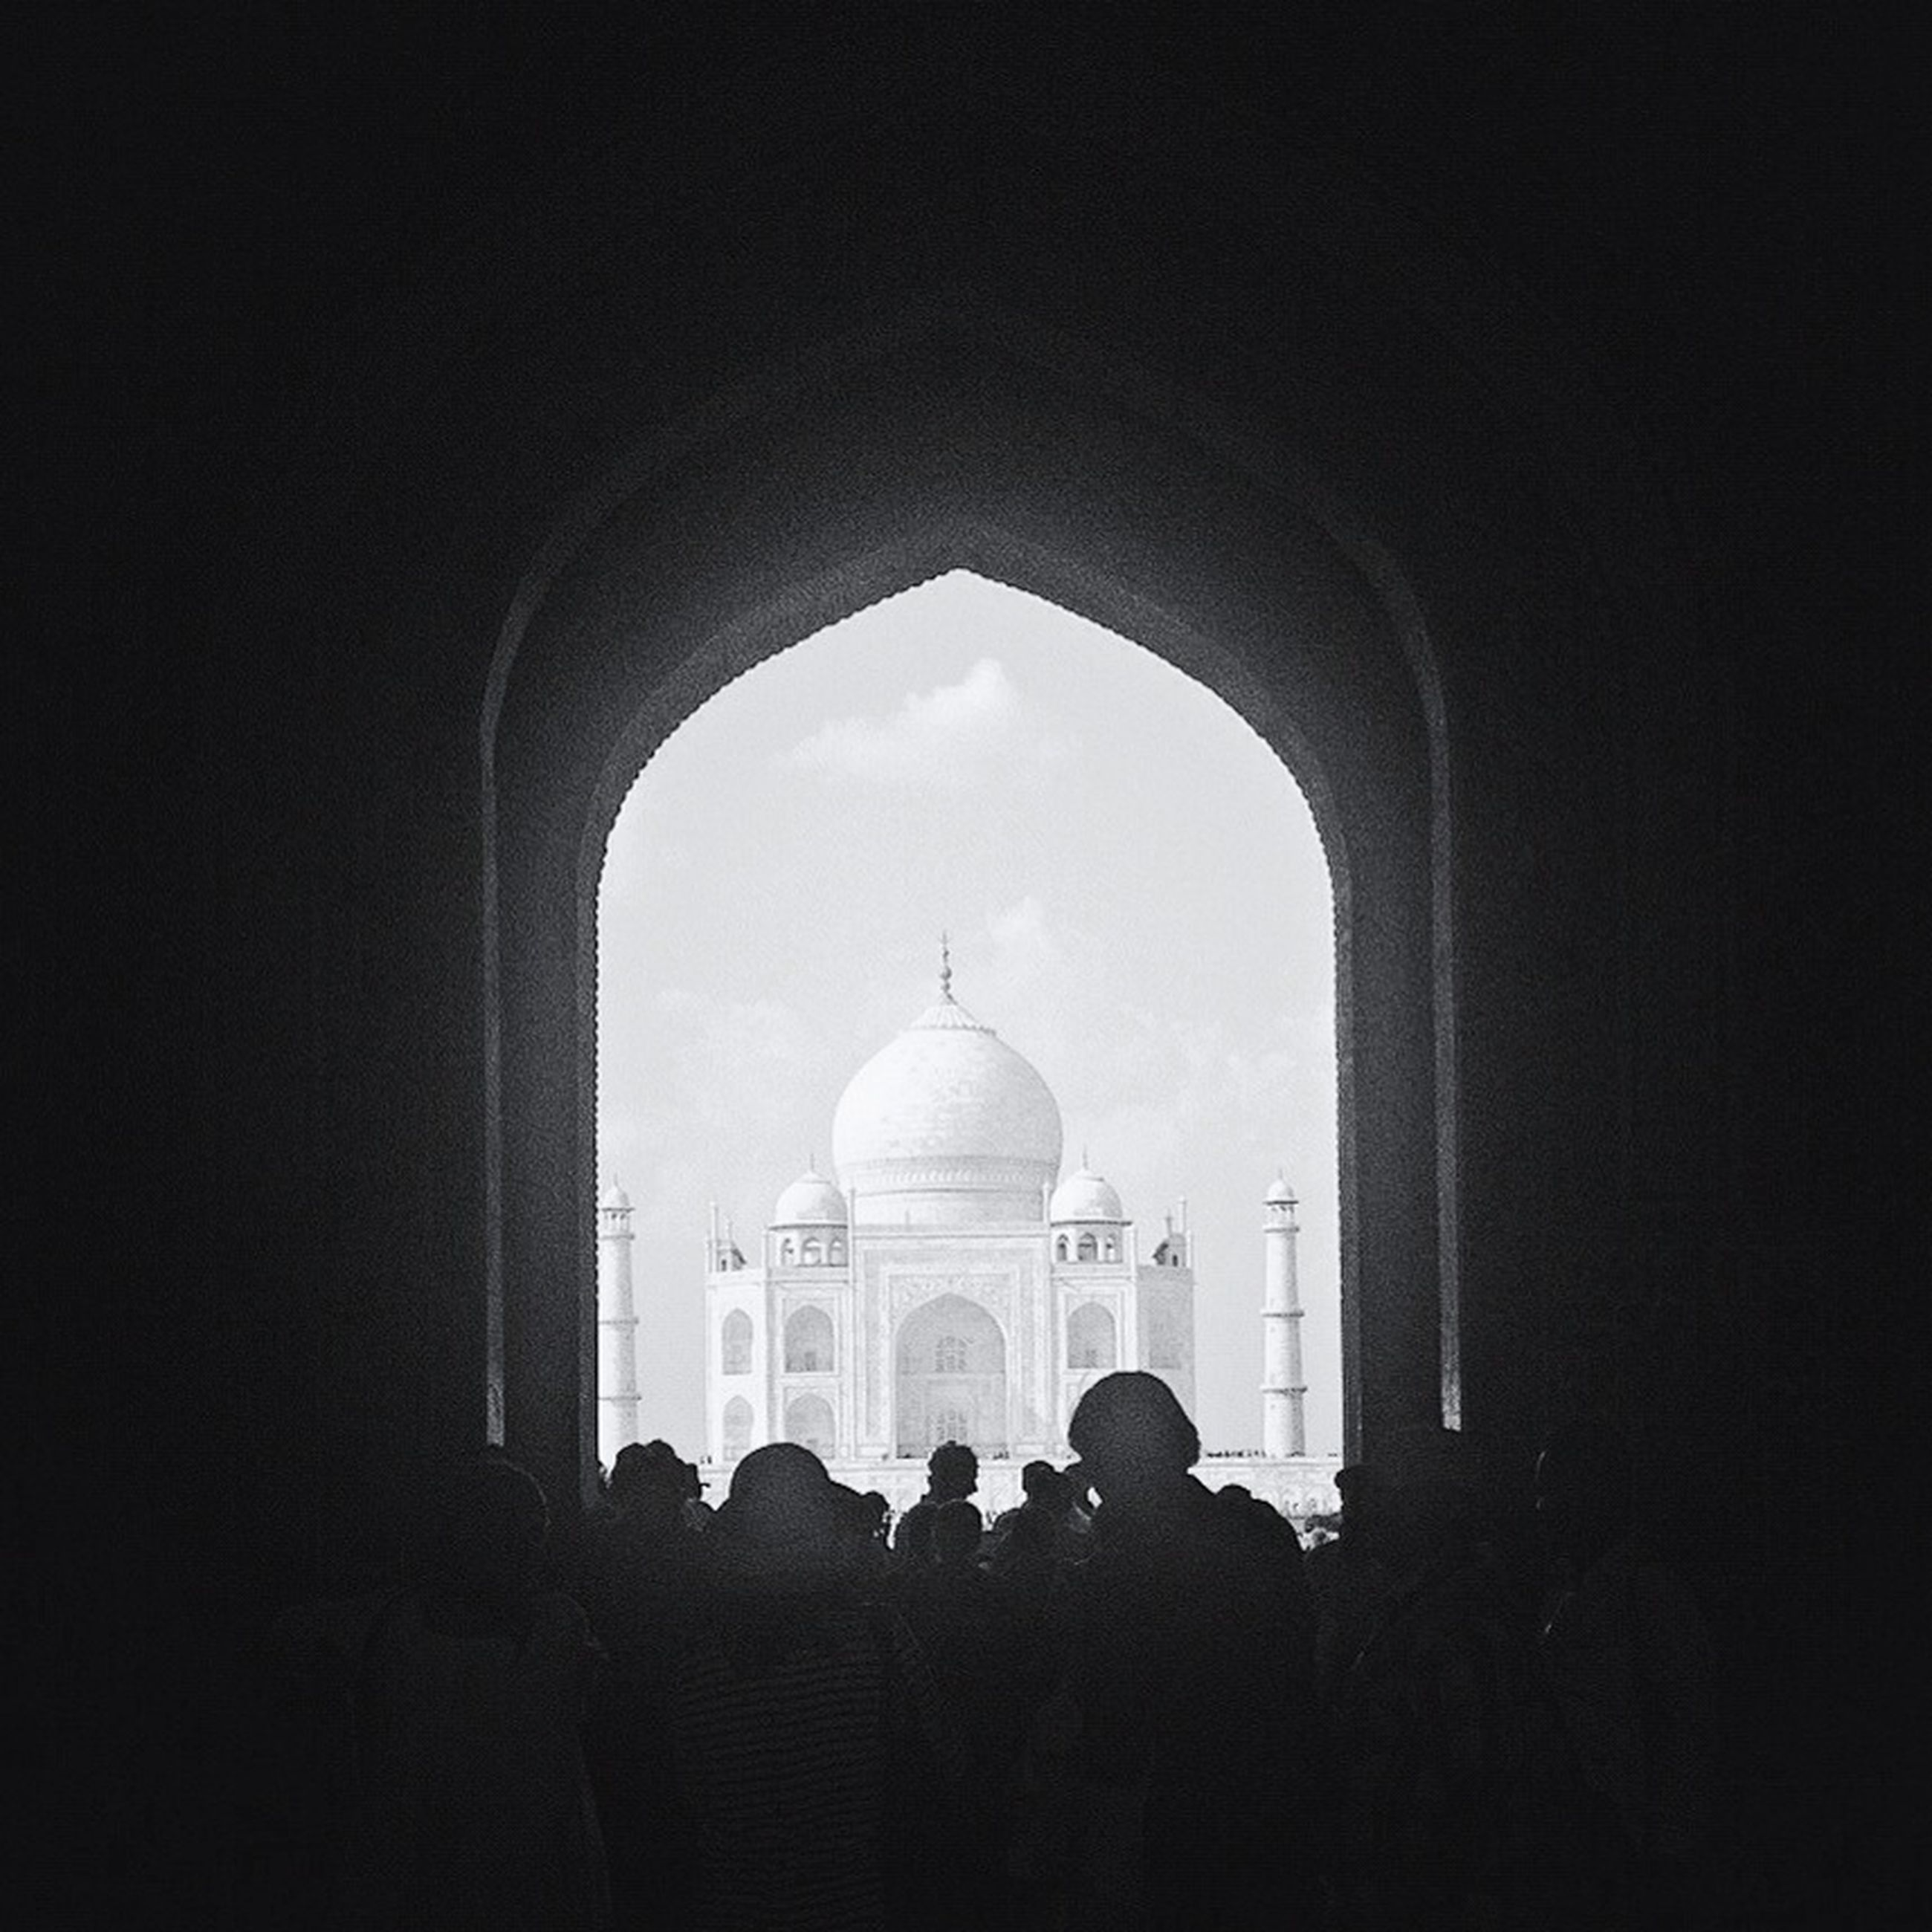 place of worship, architecture, religion, spirituality, built structure, church, arch, famous place, dome, islam, mosque, international landmark, travel destinations, tourism, cathedral, building exterior, indoors, travel